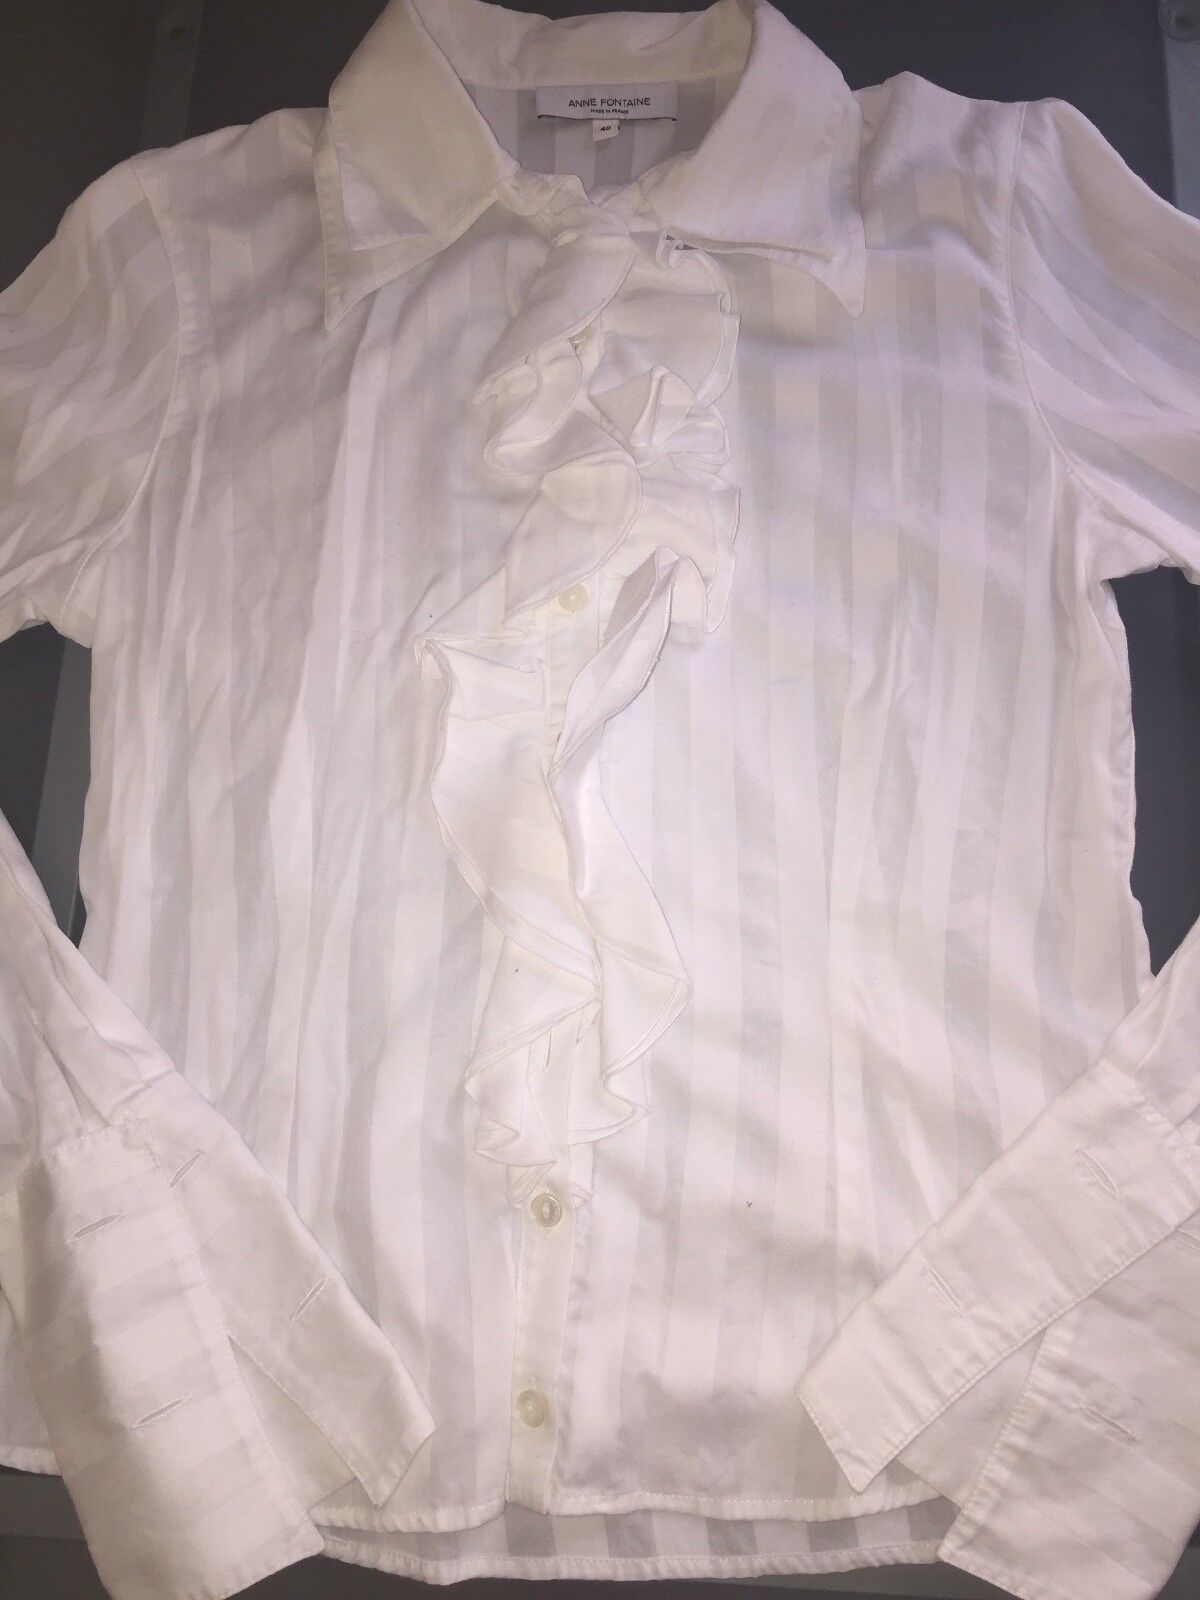 Anne Fontaine White Ruffled Blouse-Sz.40  - image 2